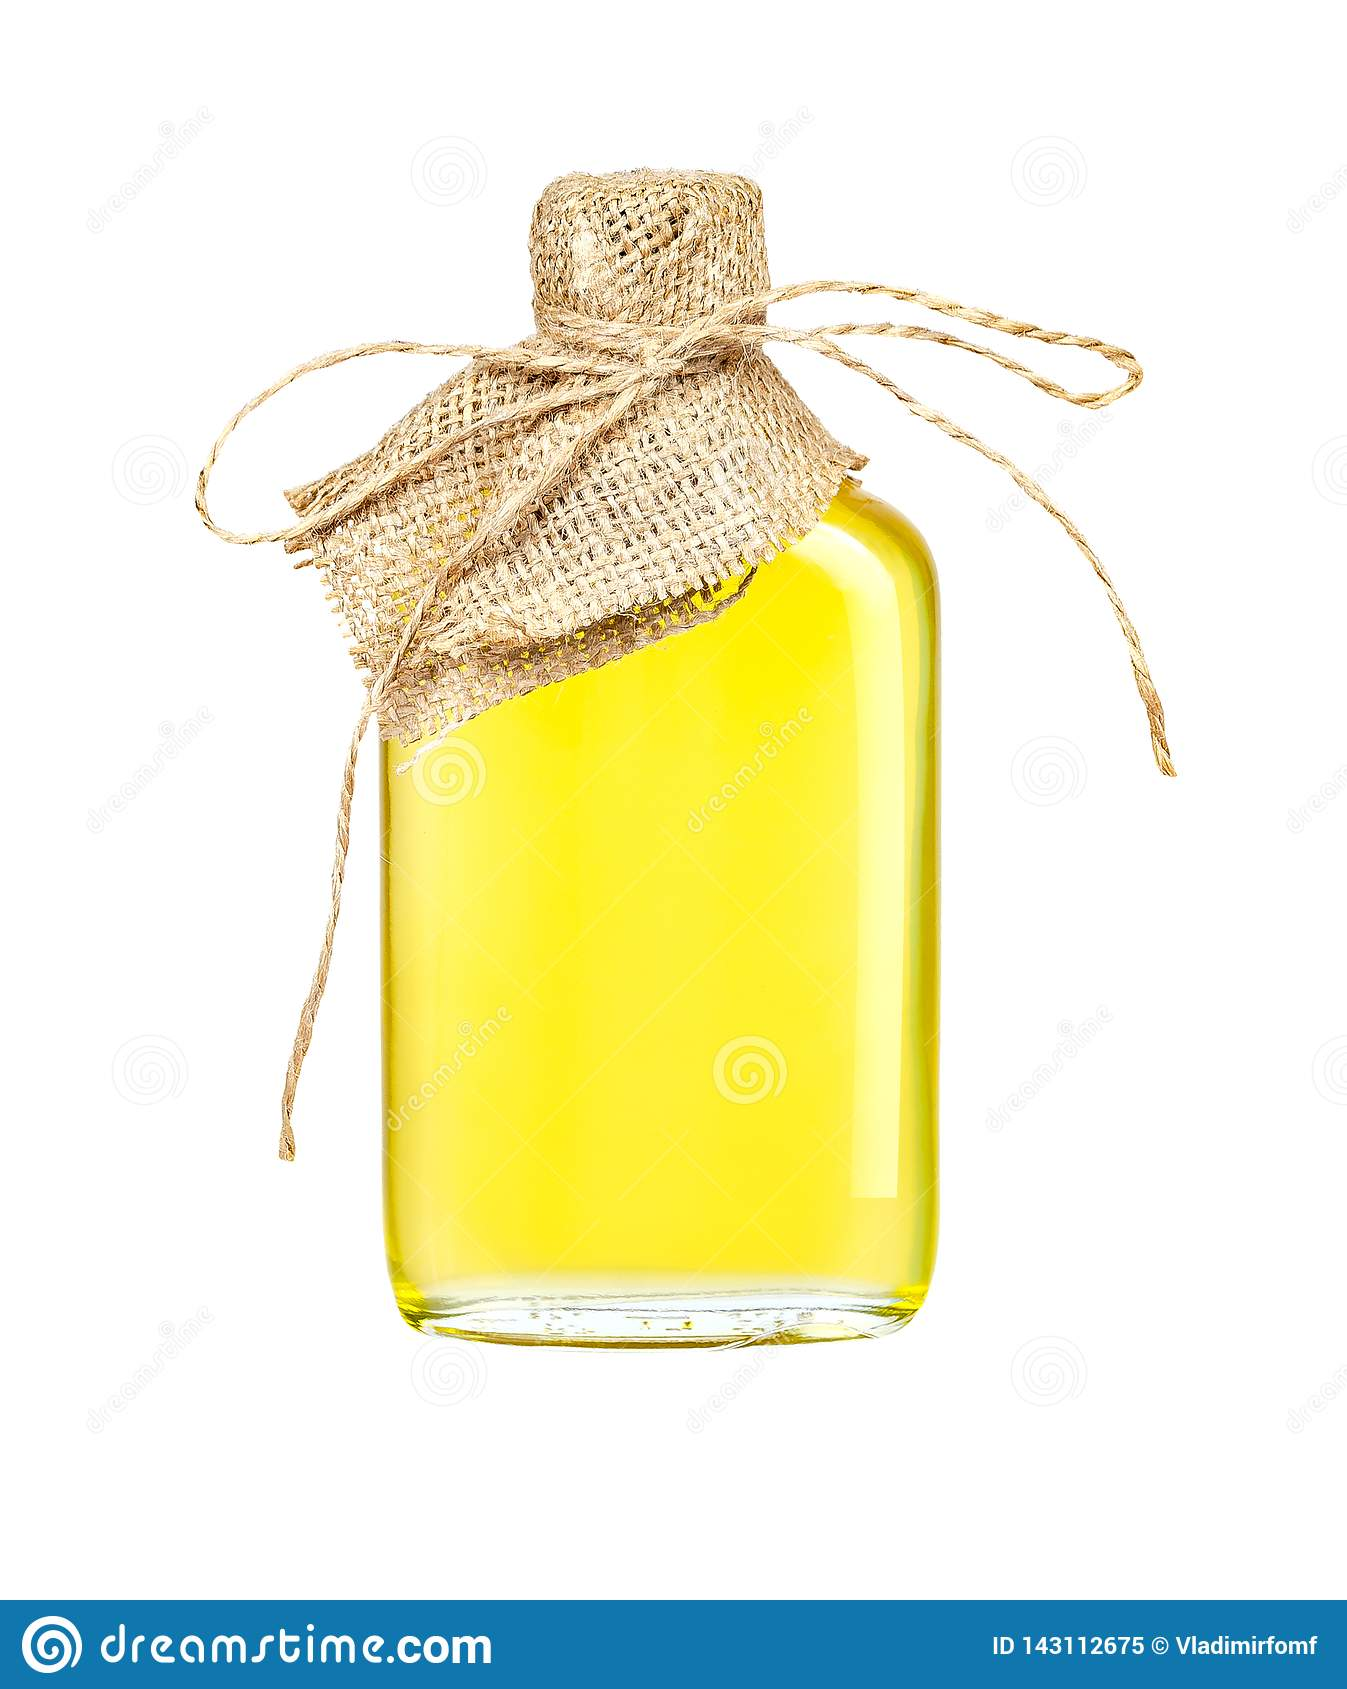 Sunflower oil in a crafted glass bottle isolated on a white background with clipping path